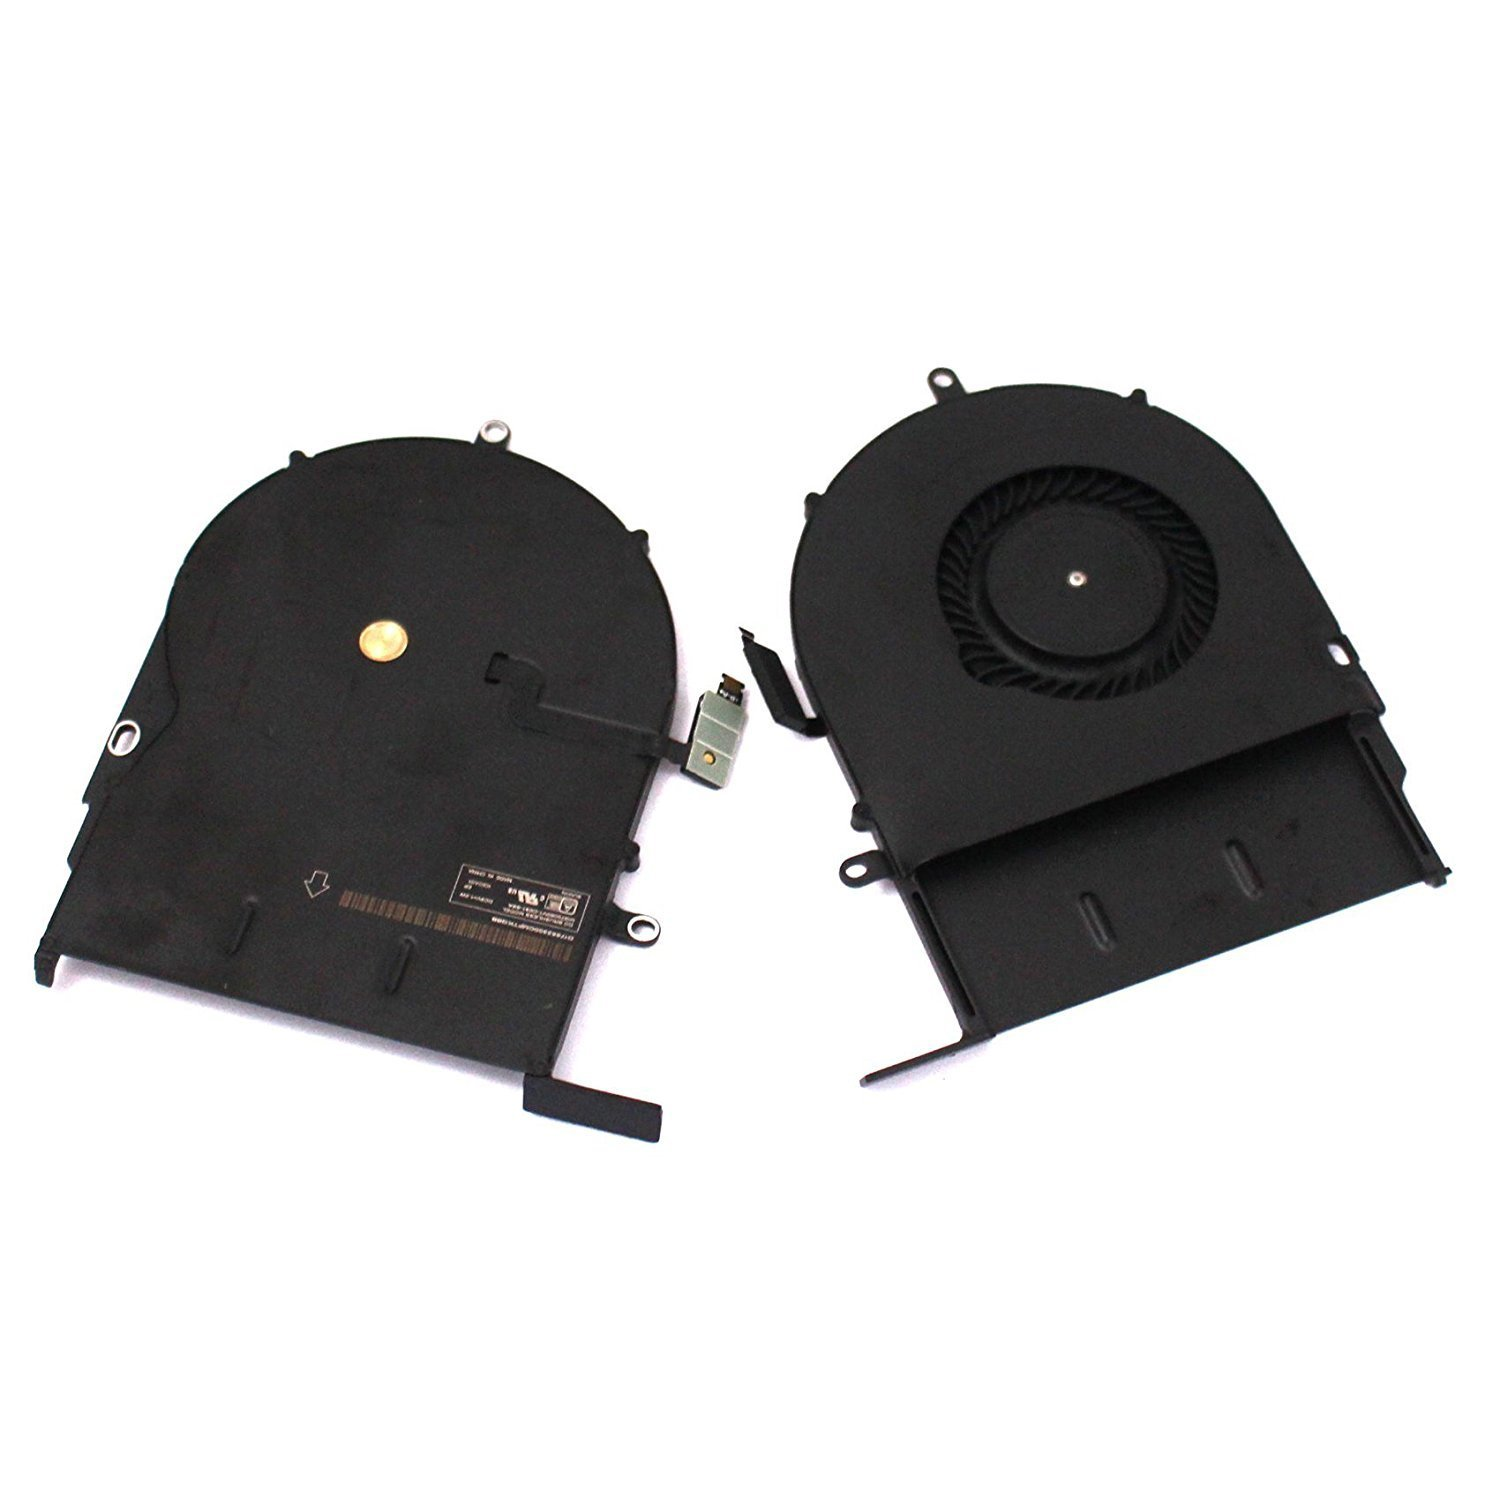 New Laptop CPU Cooling Fan for Macbook Pro A1502 Laptop 2.4GHz Late 2013 MG70050V1-C03C-S9A 610-0190-A